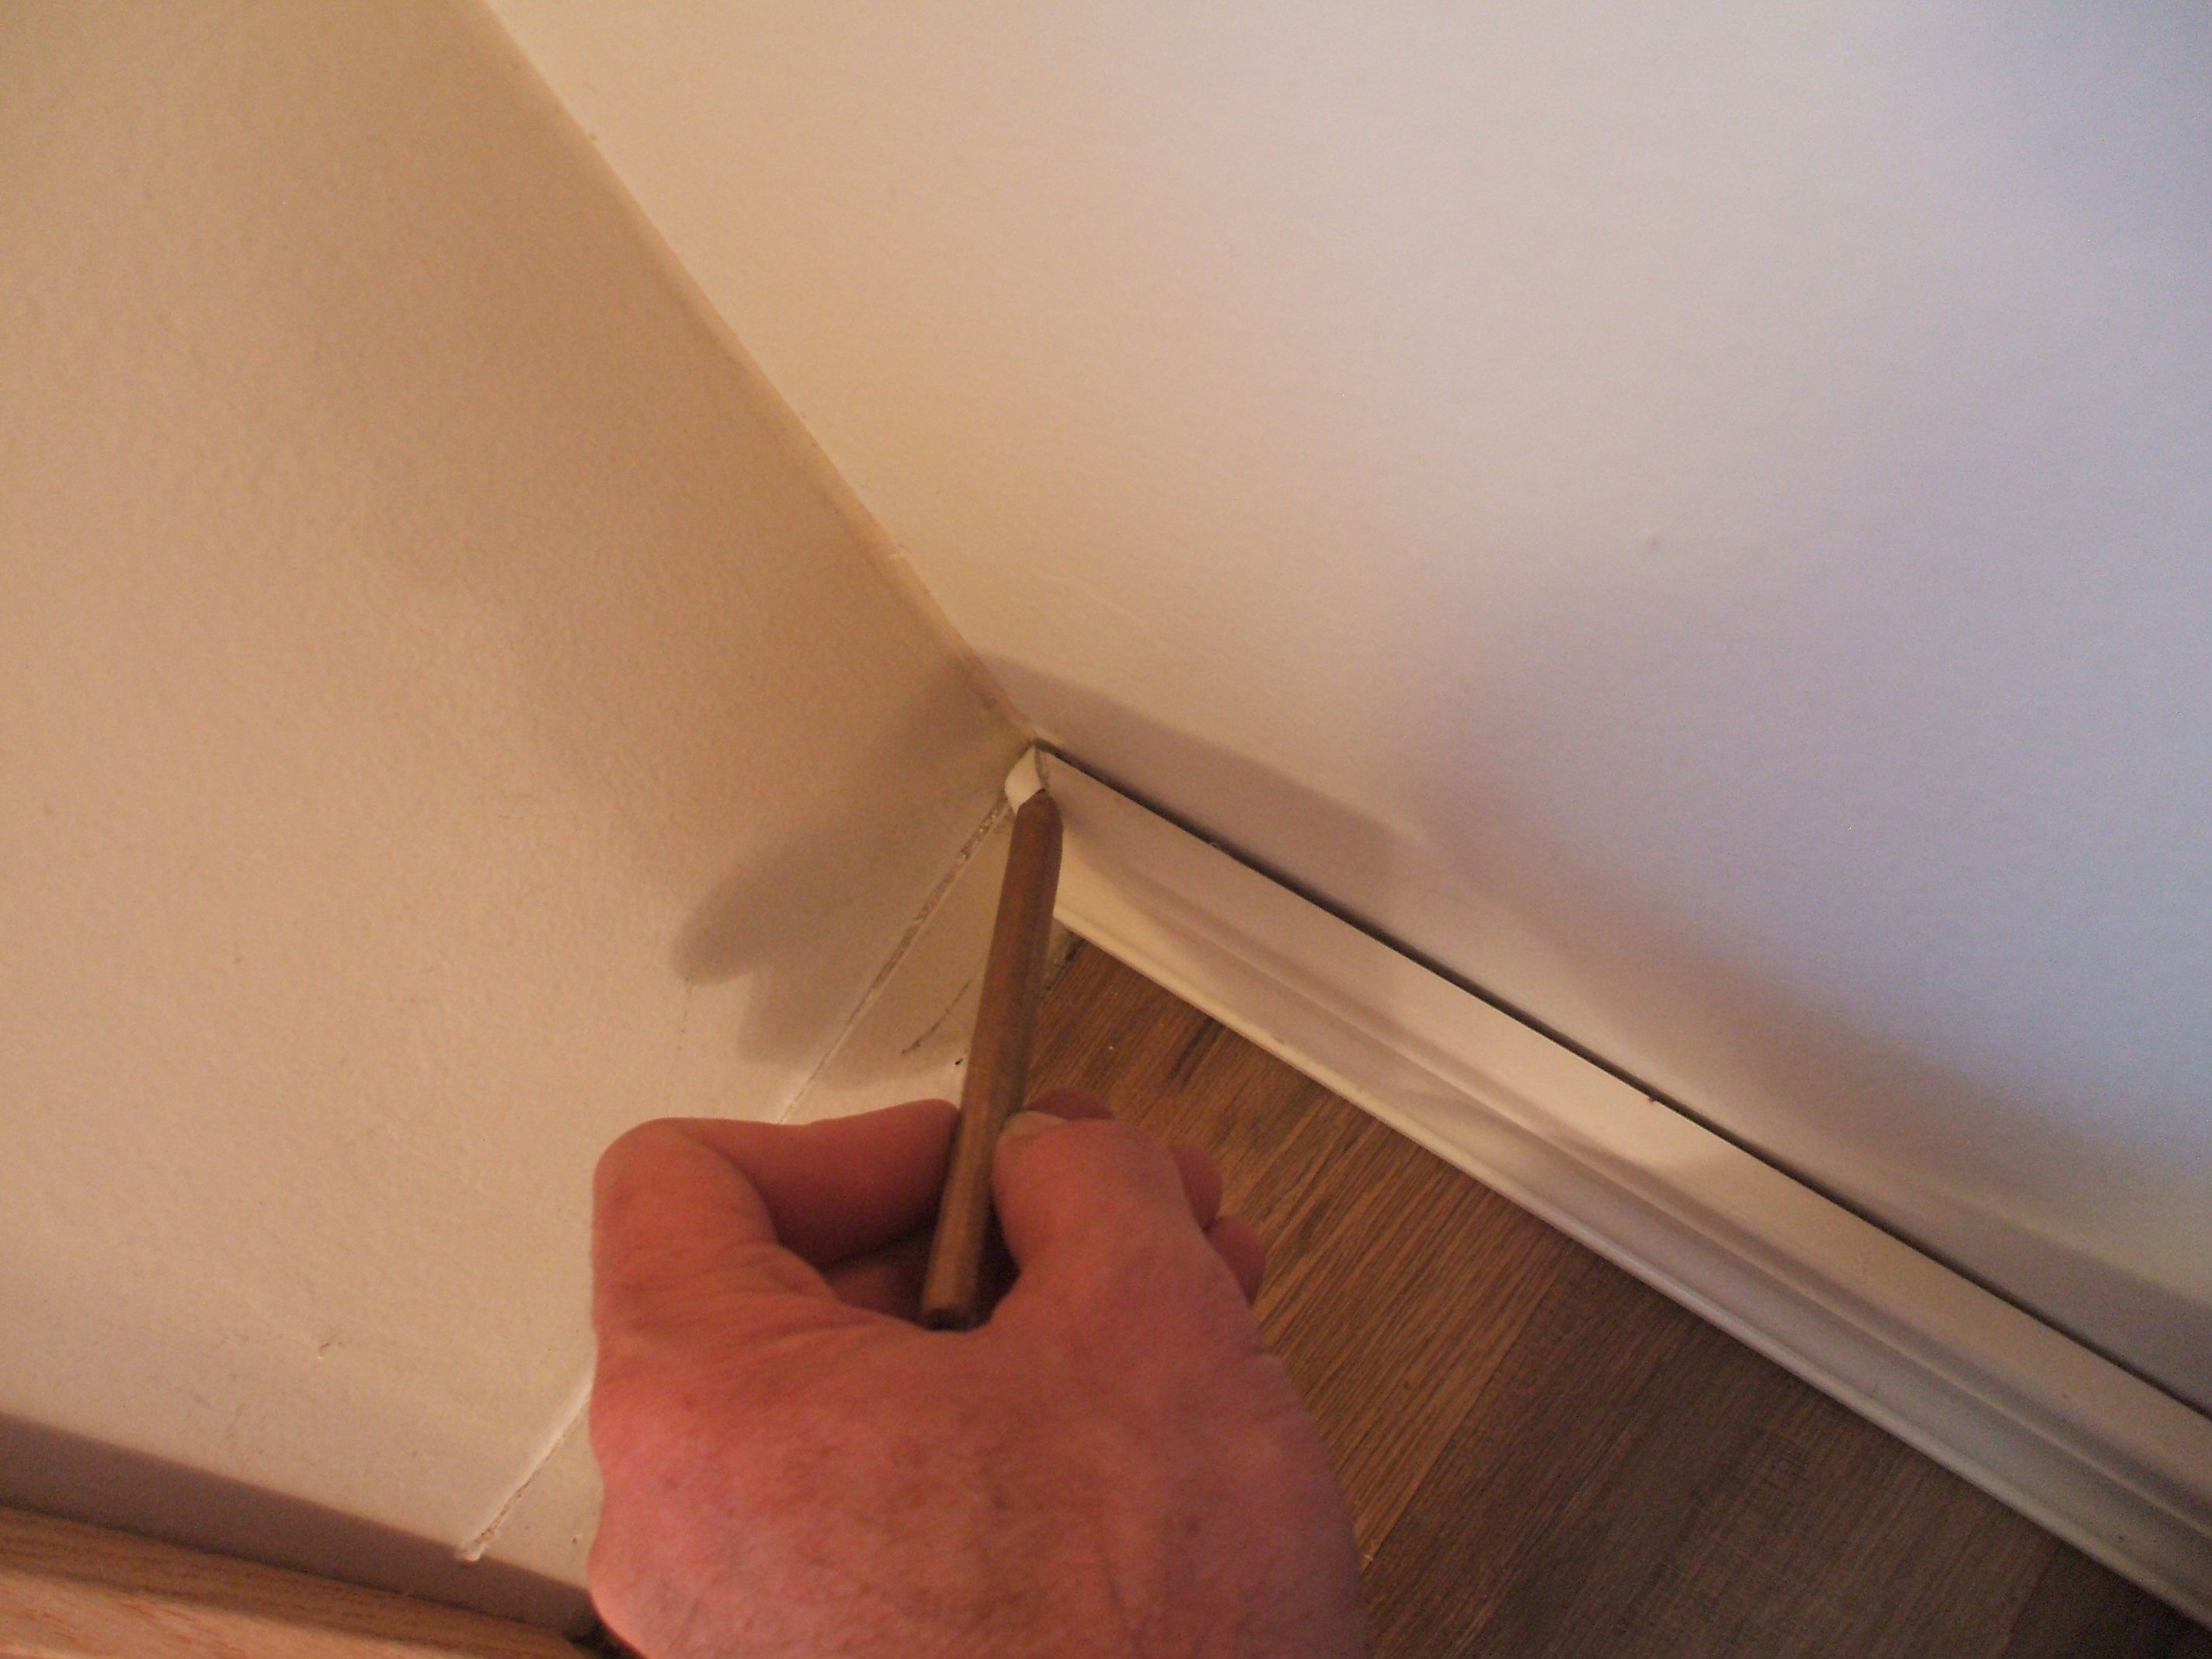 How to cut base molding around wall vent - Baseboard Woes Learn How To Install On Inside Corners Trim Molding